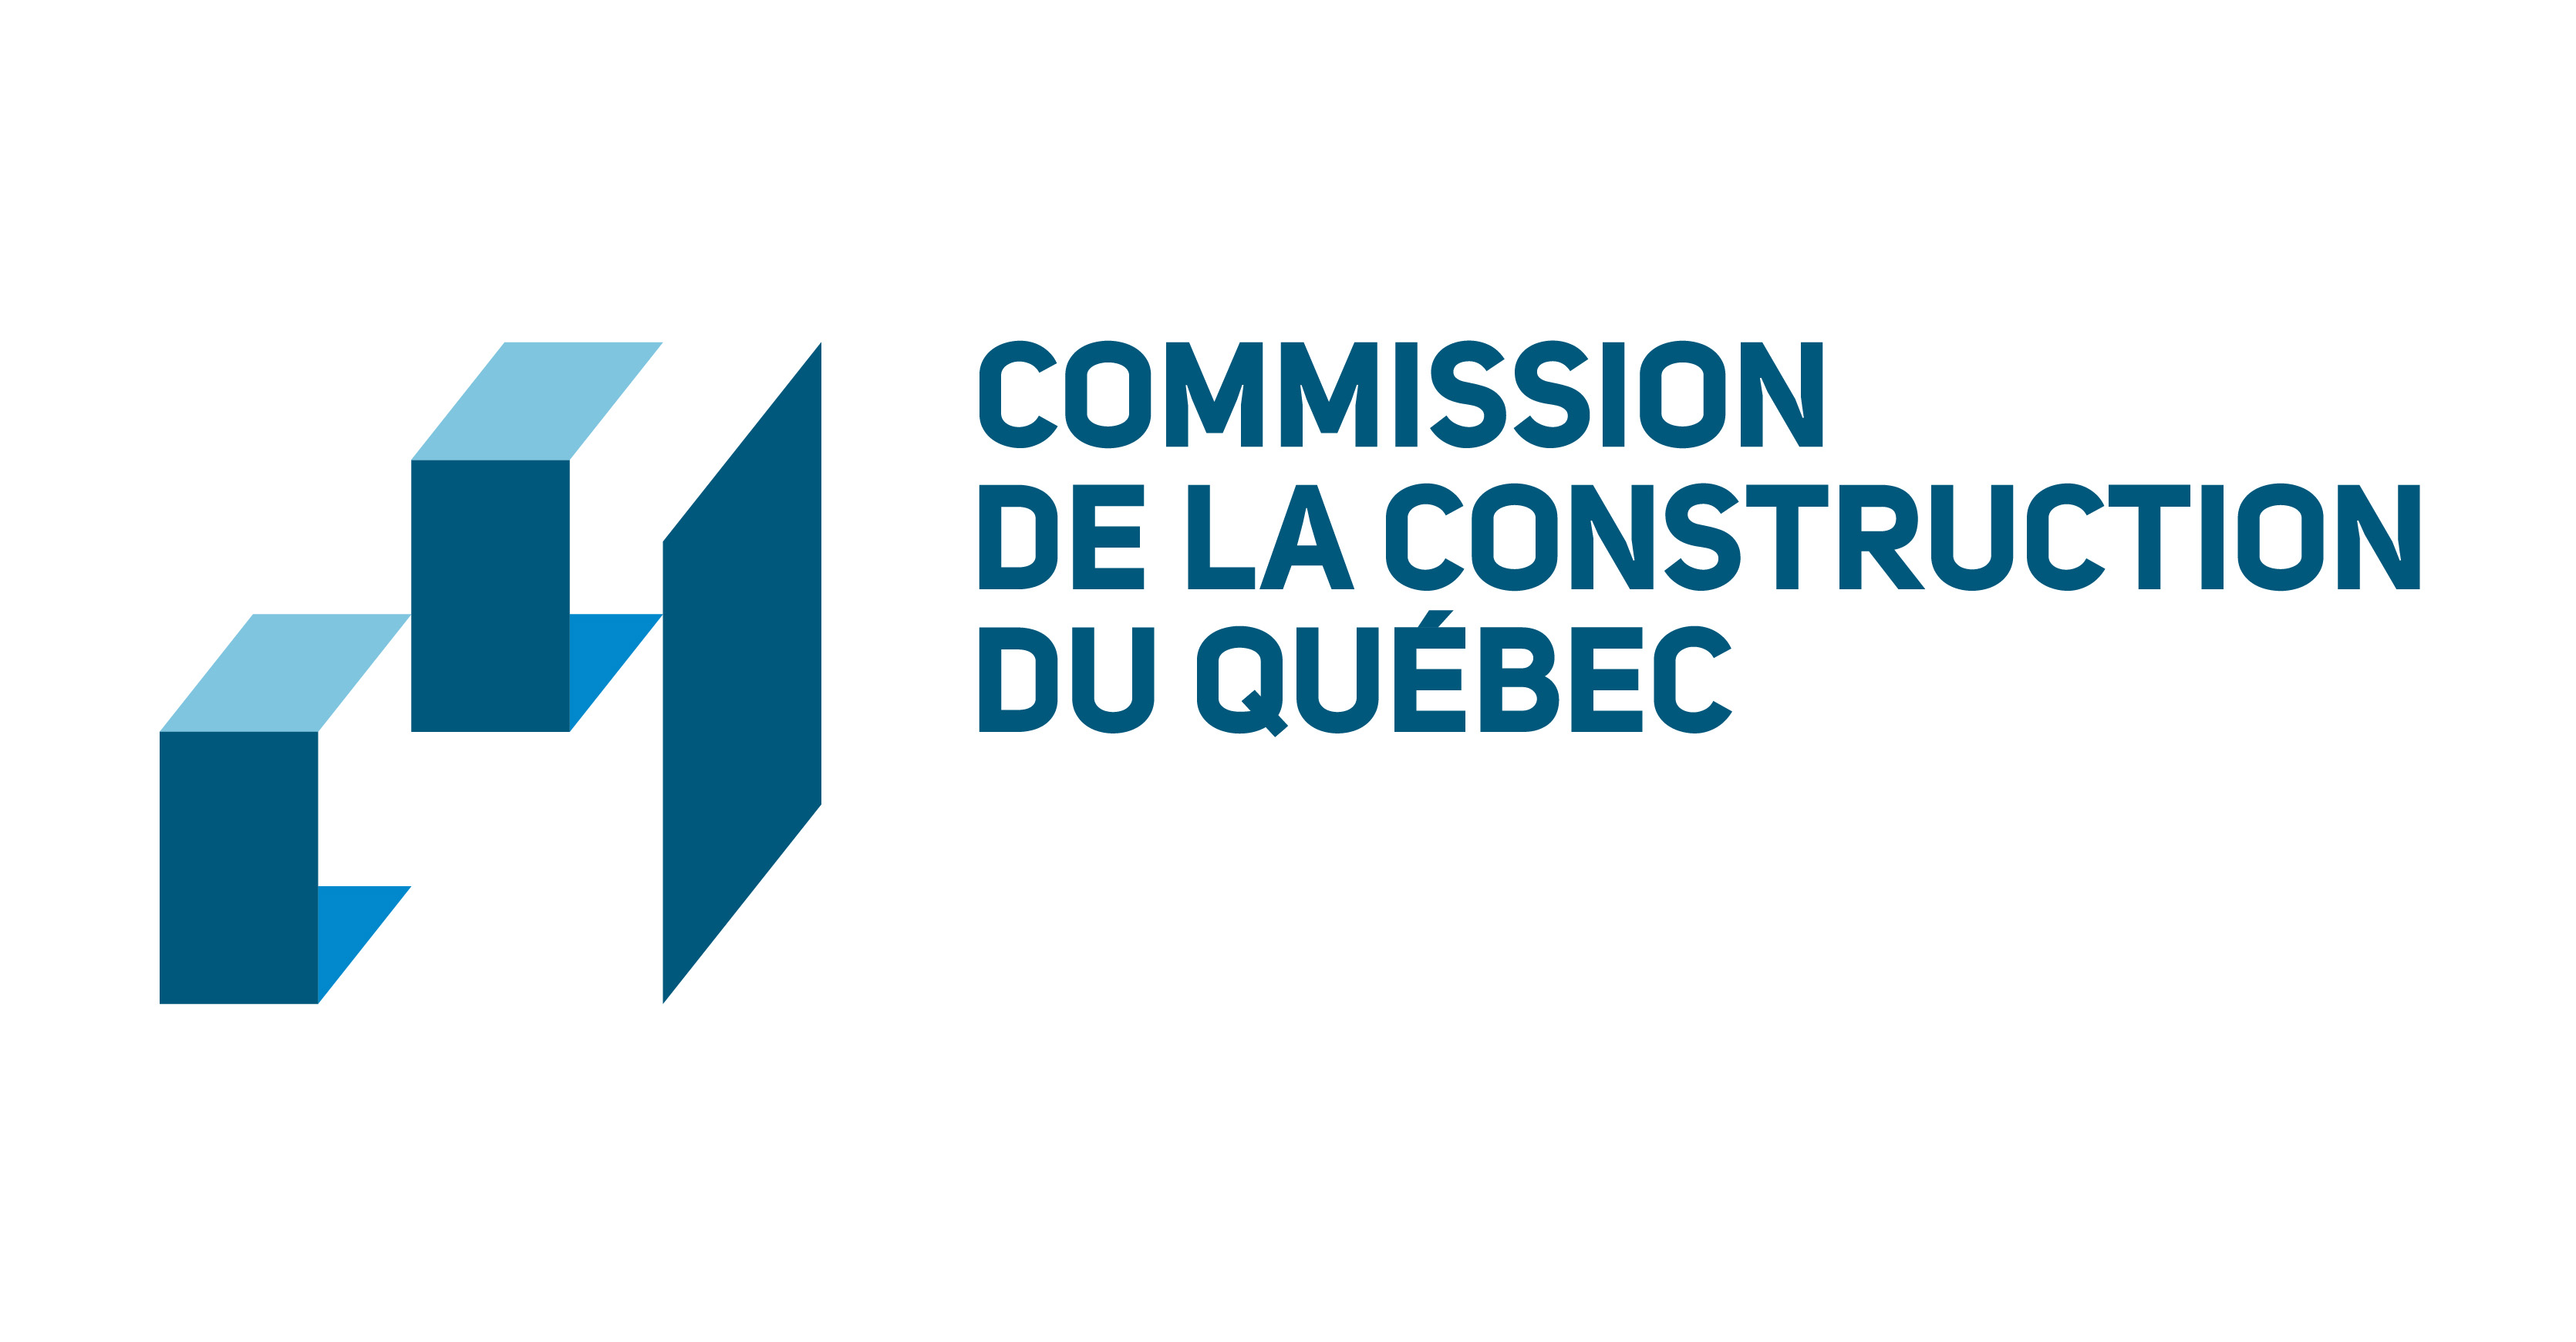 The Commission de la construction du Québec (CCQ)